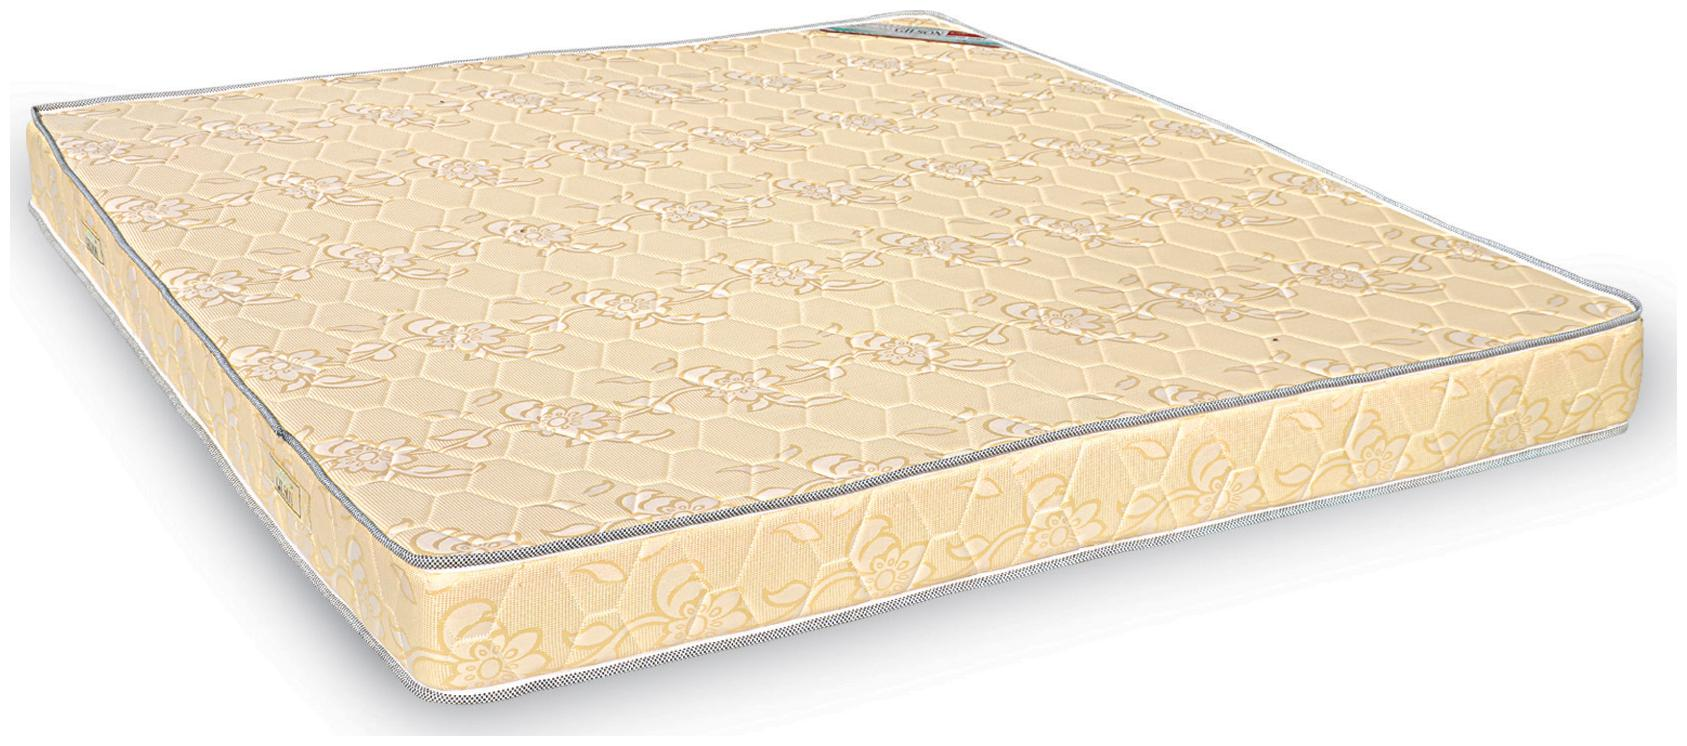 Gilson 8 inch Spring Double Size Mattress by Gilson Mattresses